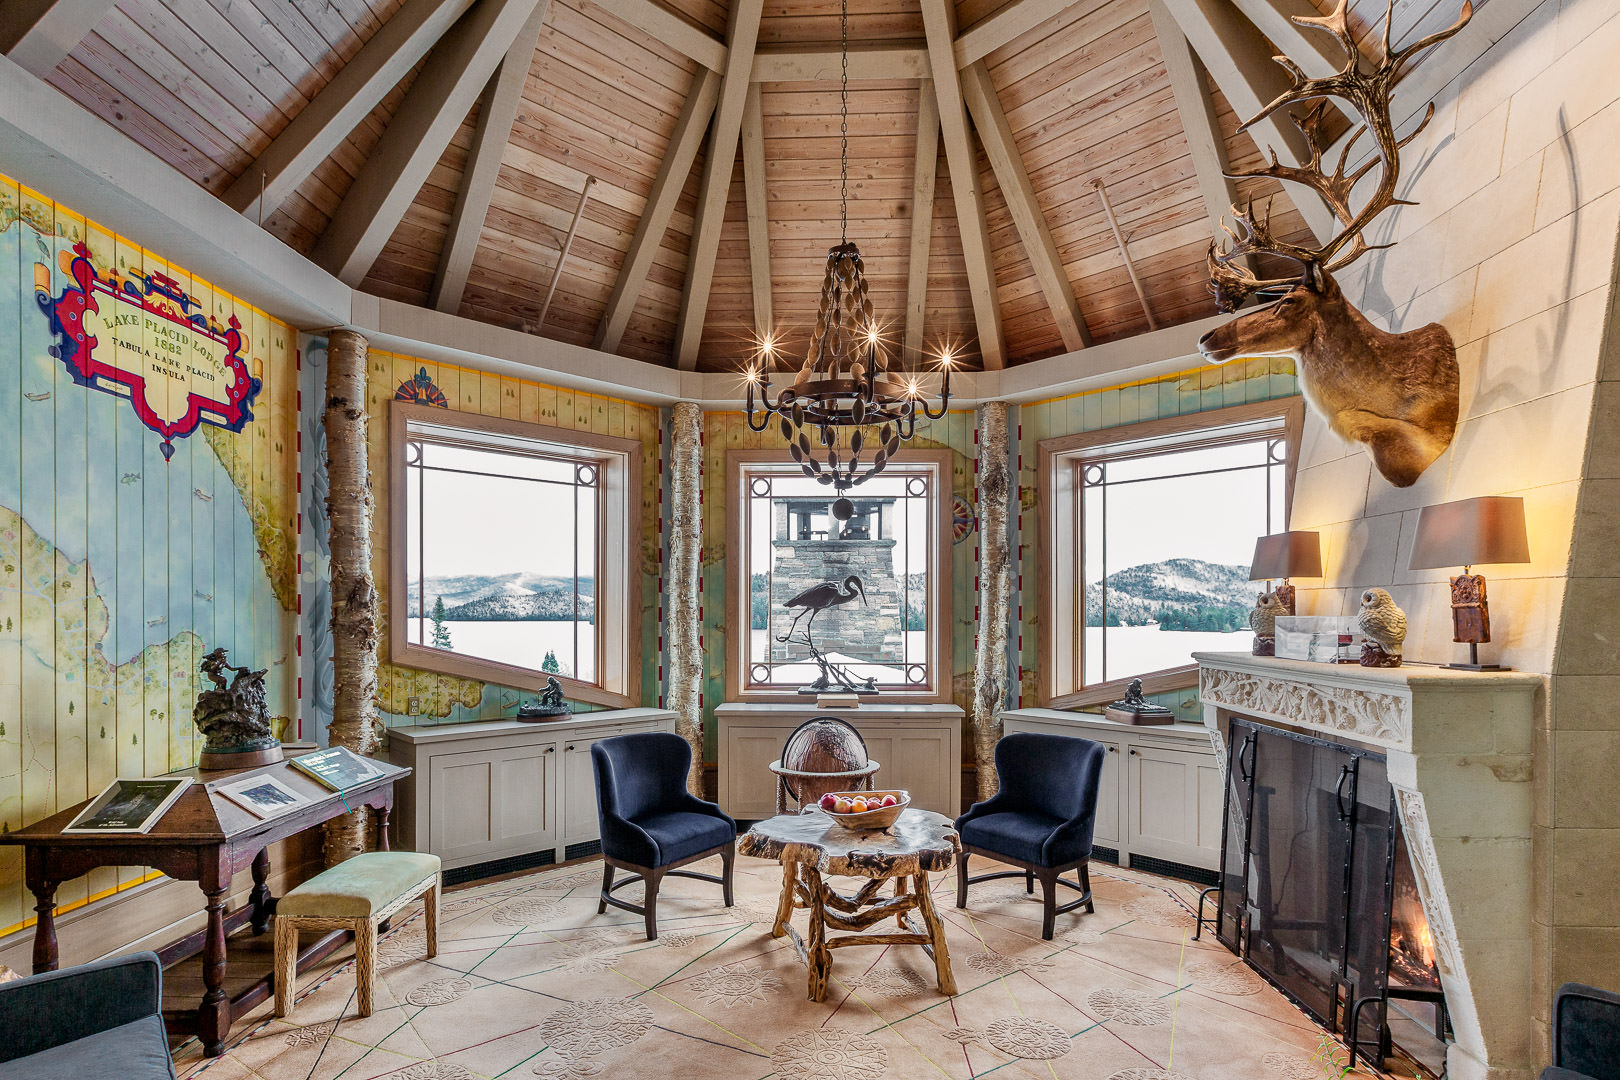 Chris Leary Is An Architectural Fine Art Hospitality Interior And 360 Photographer Based In New York City